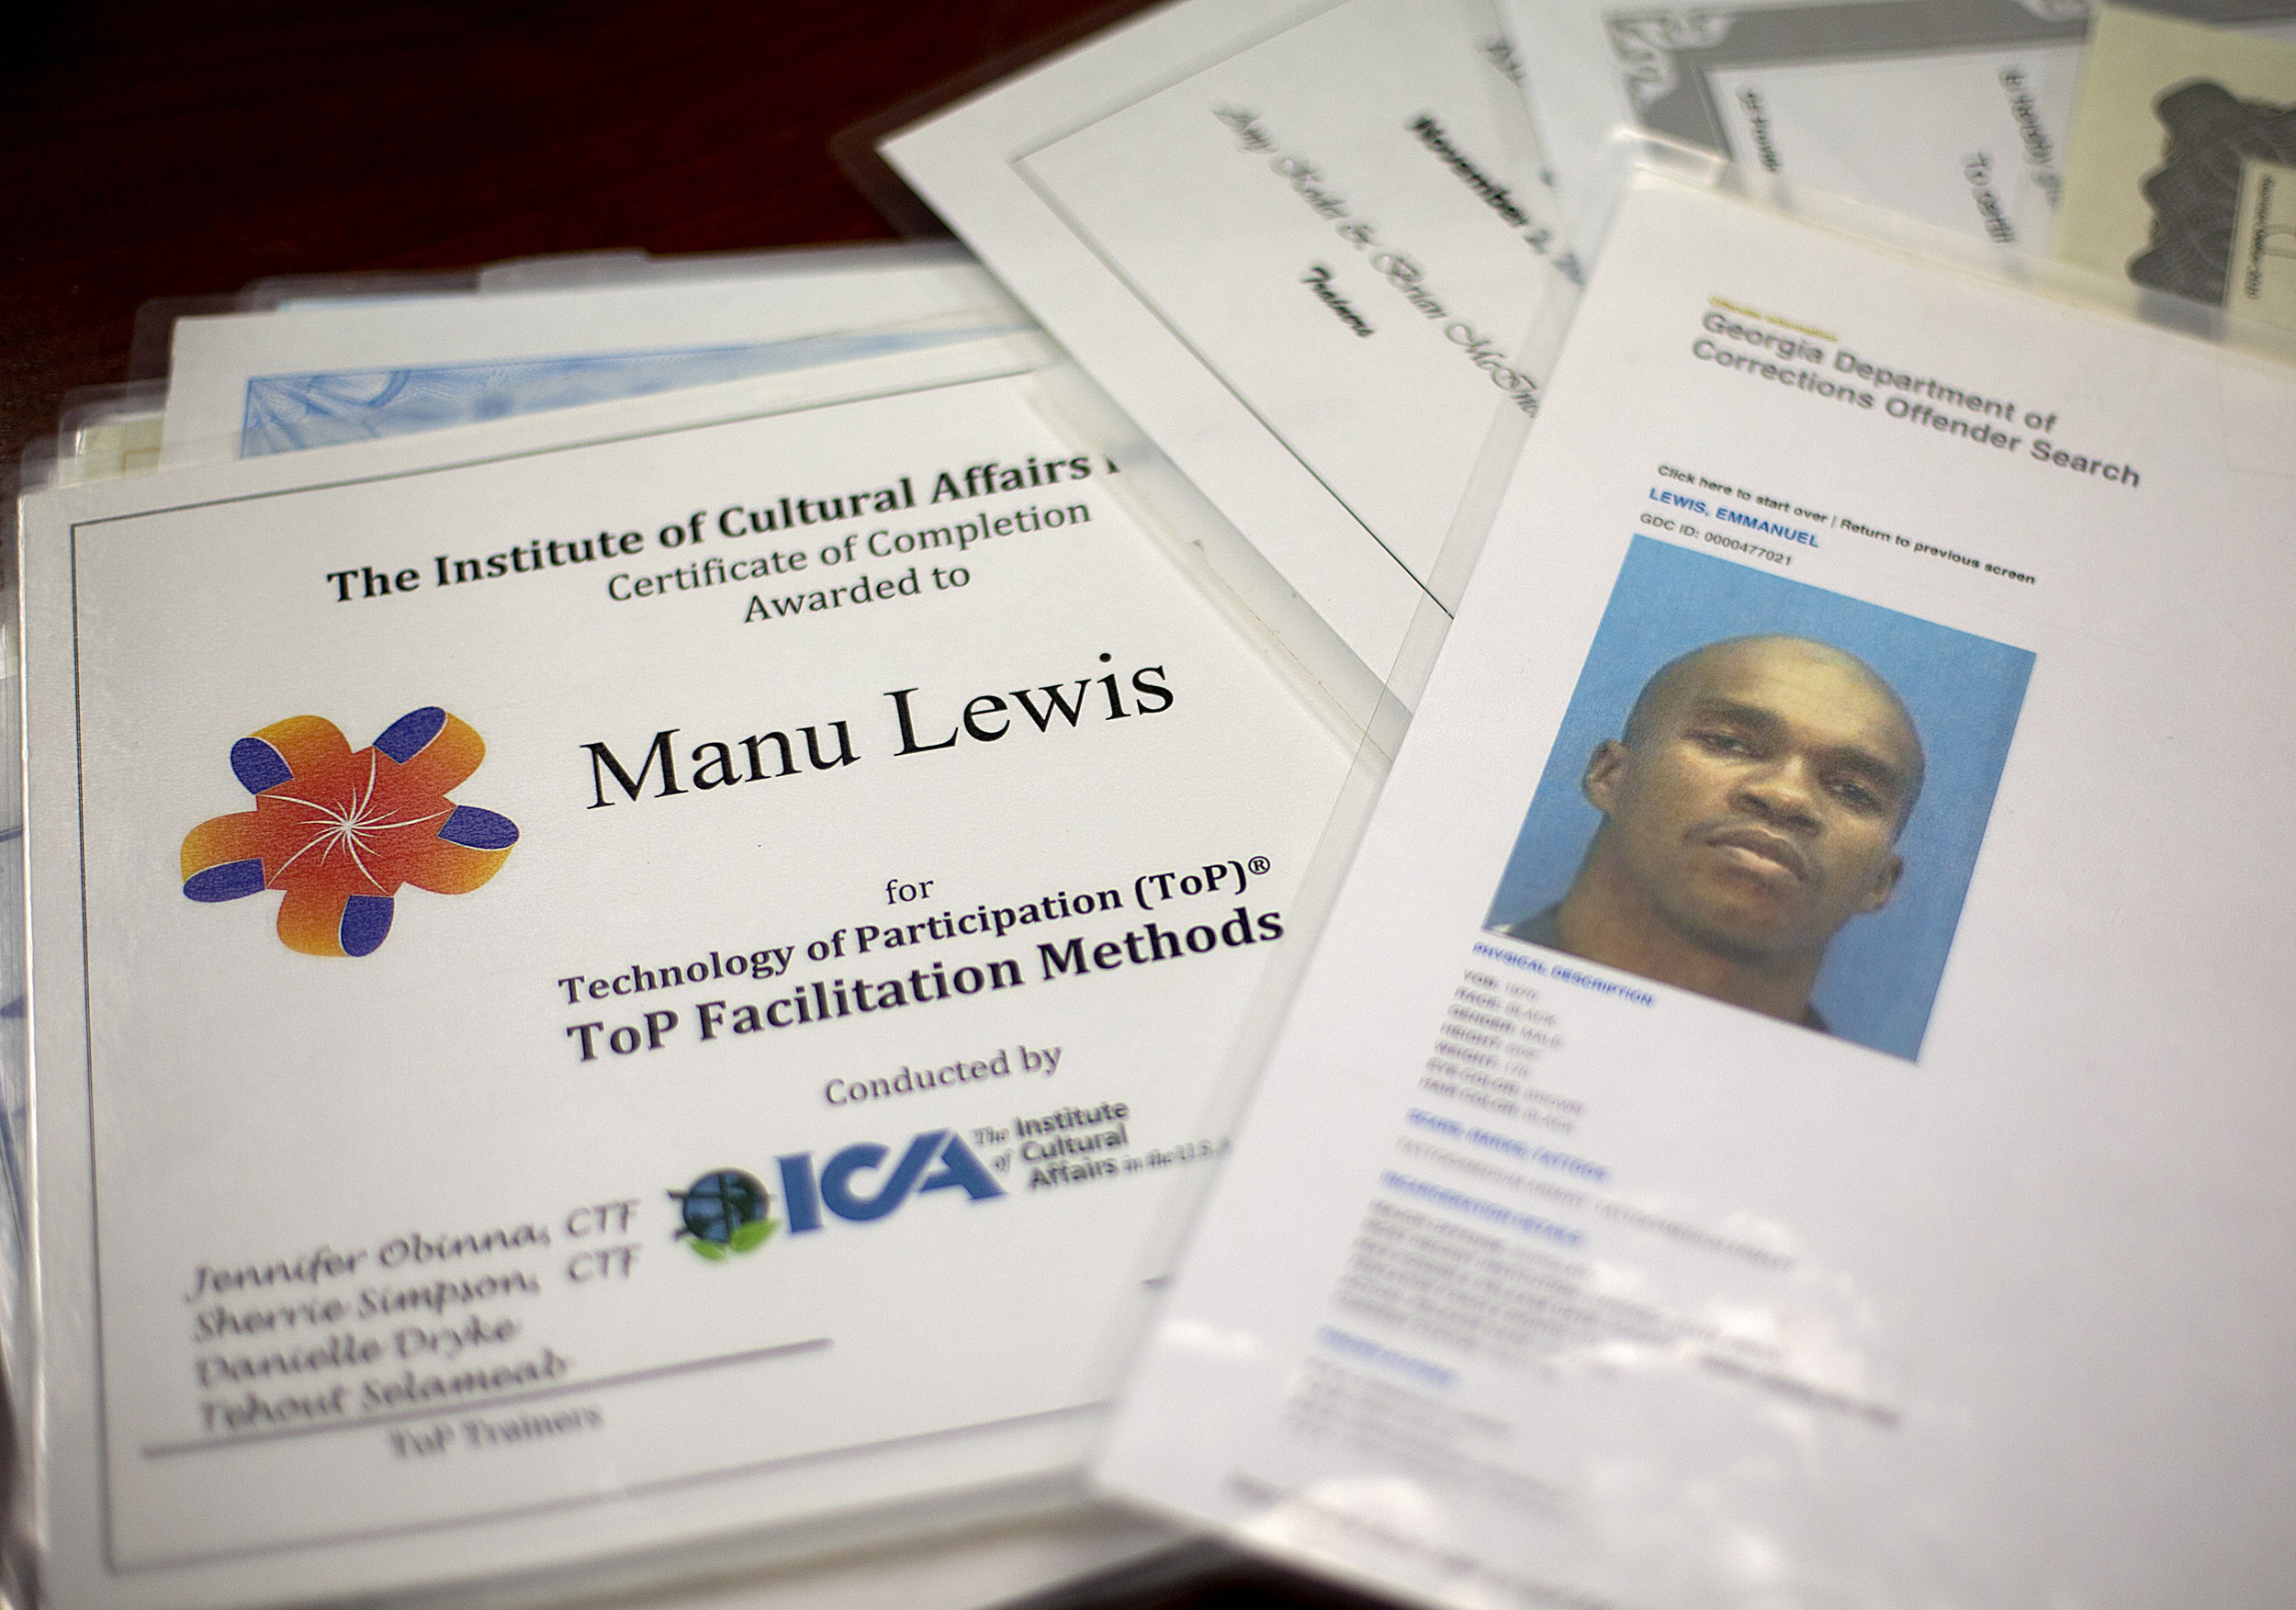 Lewis shows his clients evidence of his past mistakes (his criminal record) and his efforts to continue his education through certificates and trainings.